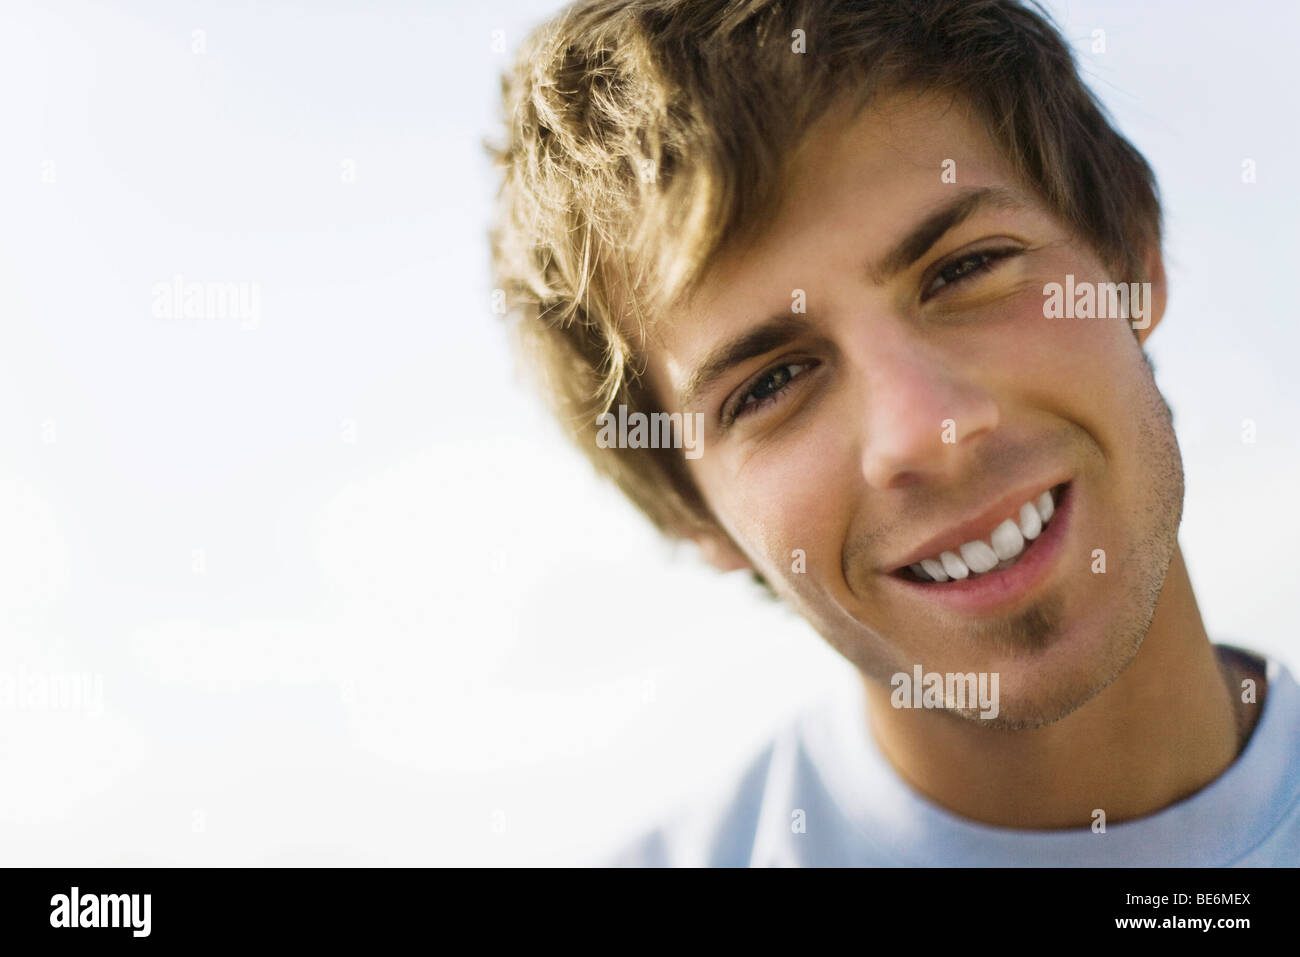 Young man smiling at camera with head tilted, portrait - Stock Image